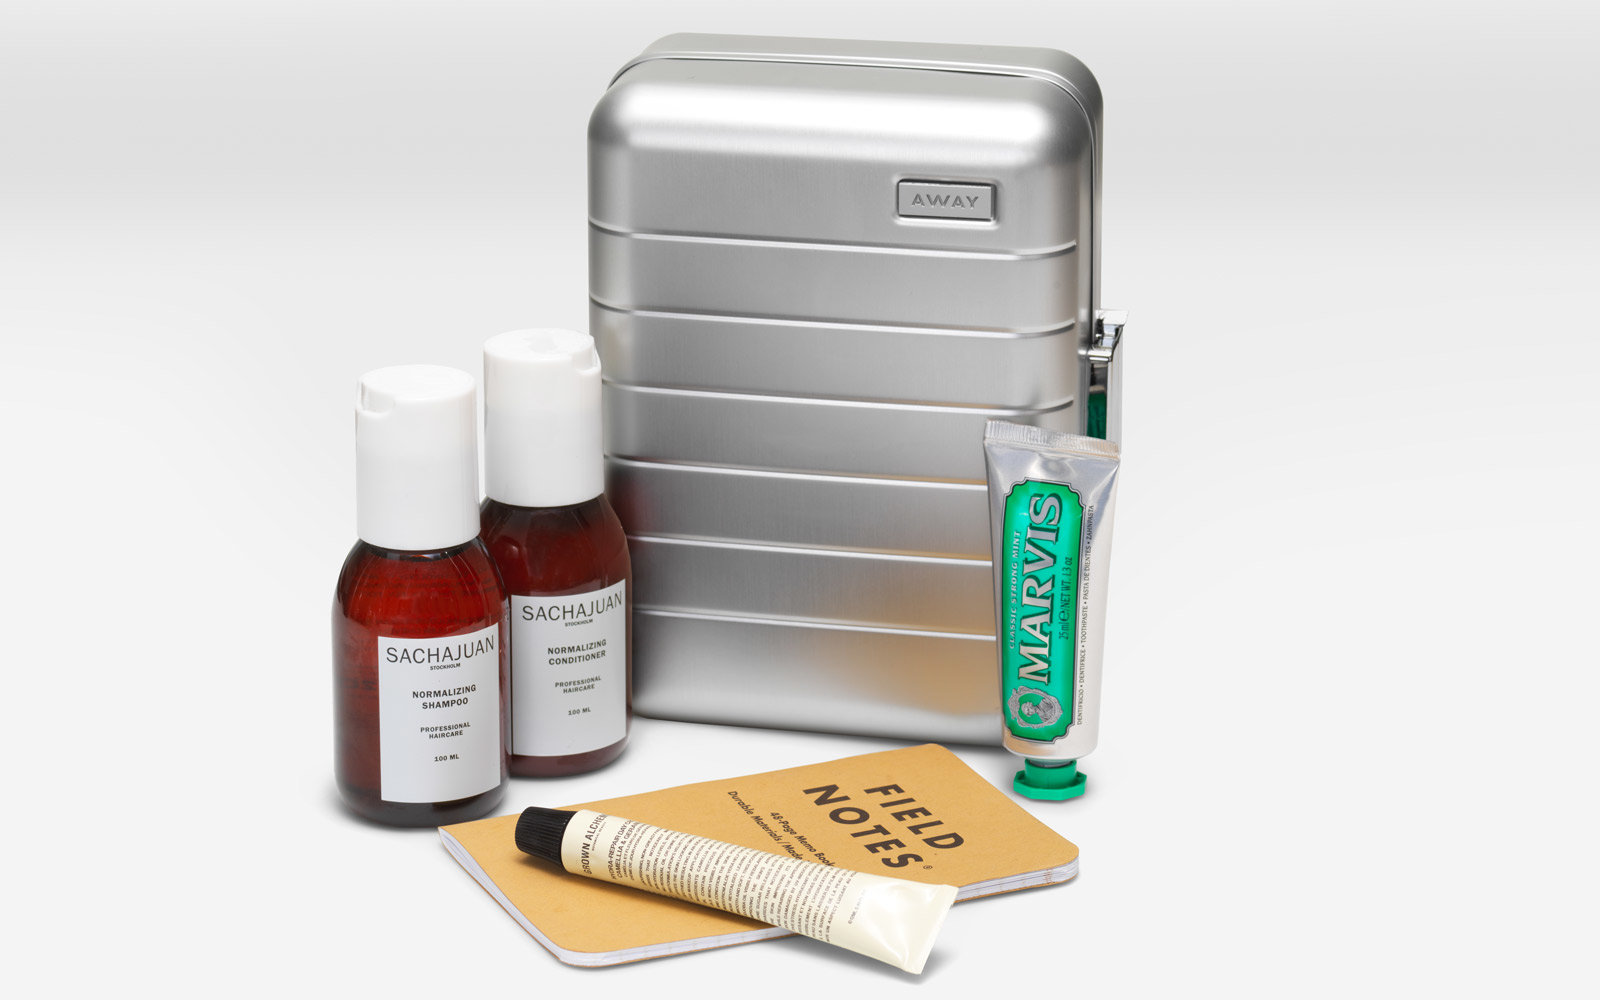 away aluminum gift set